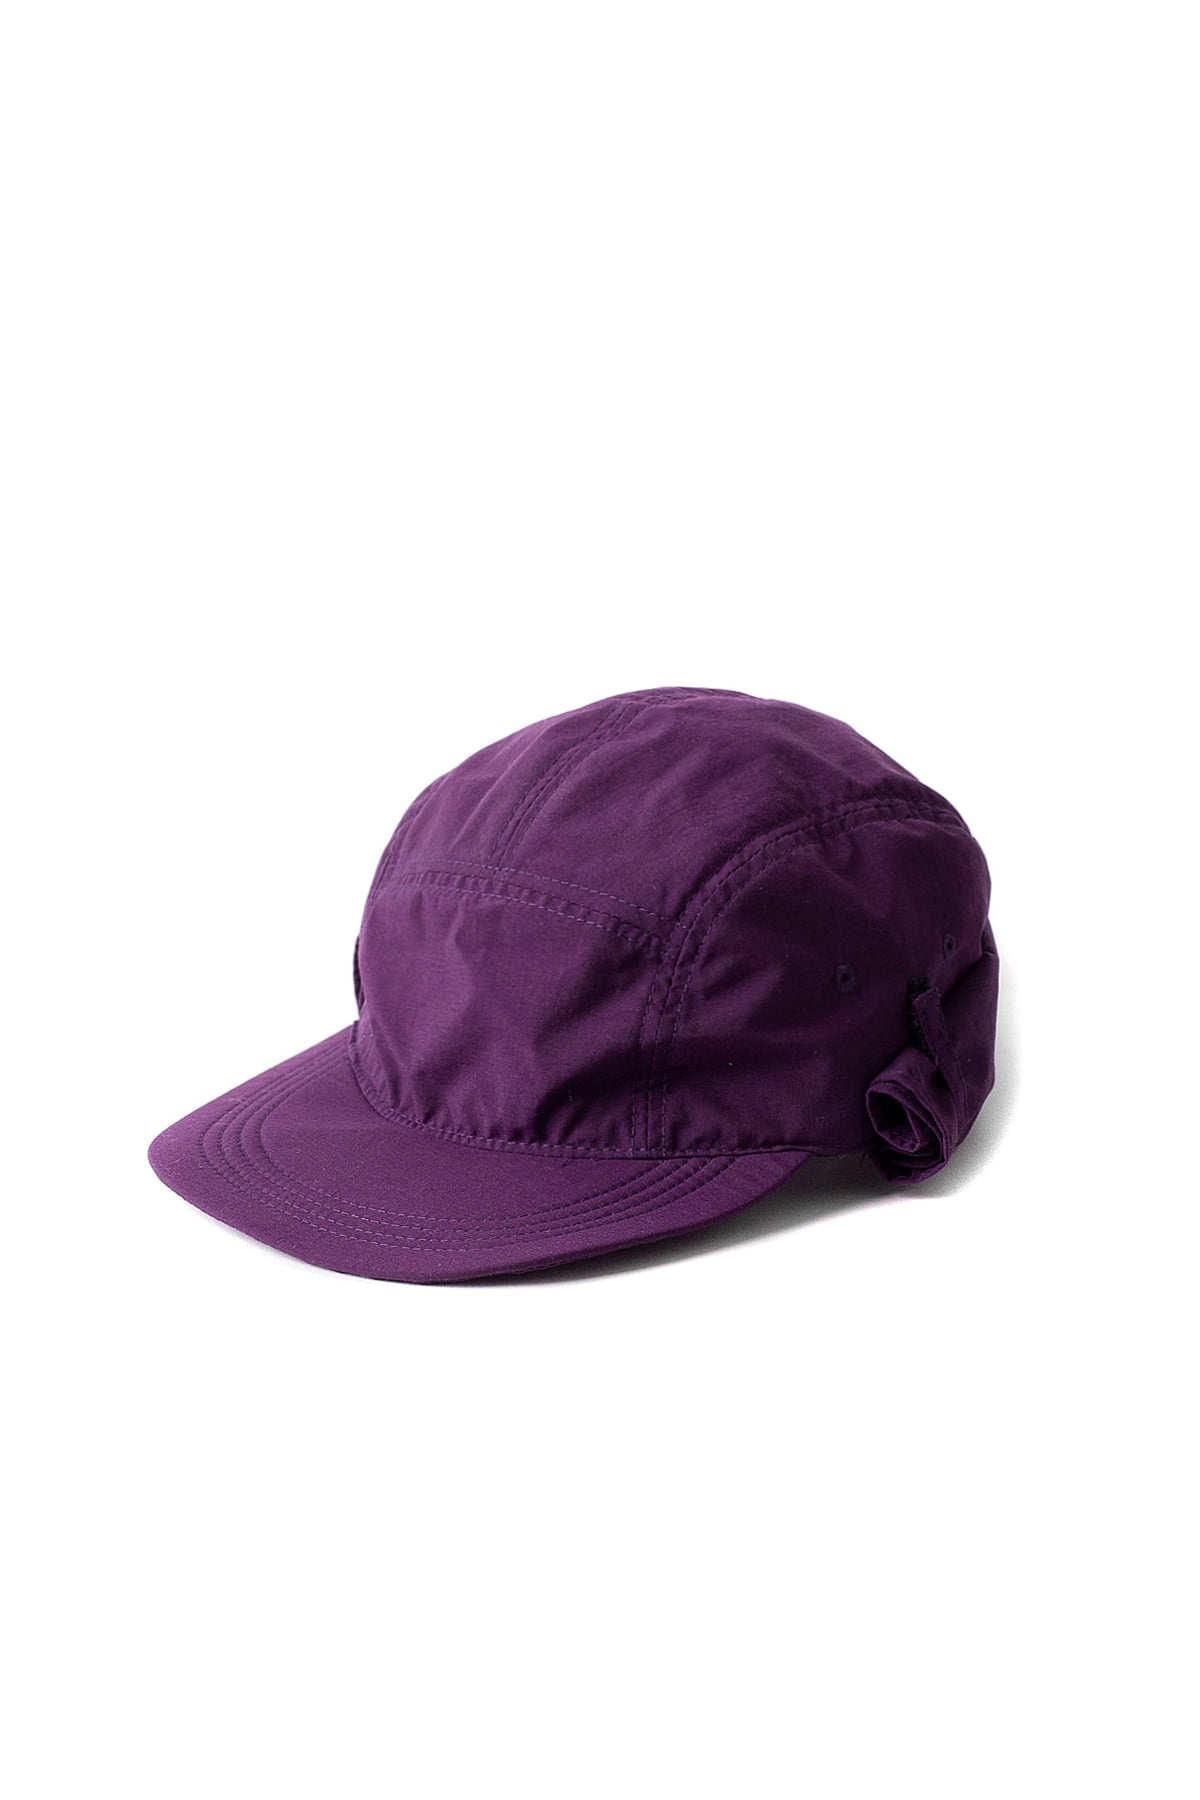 Infielder Design : Sun Cap (Purple)